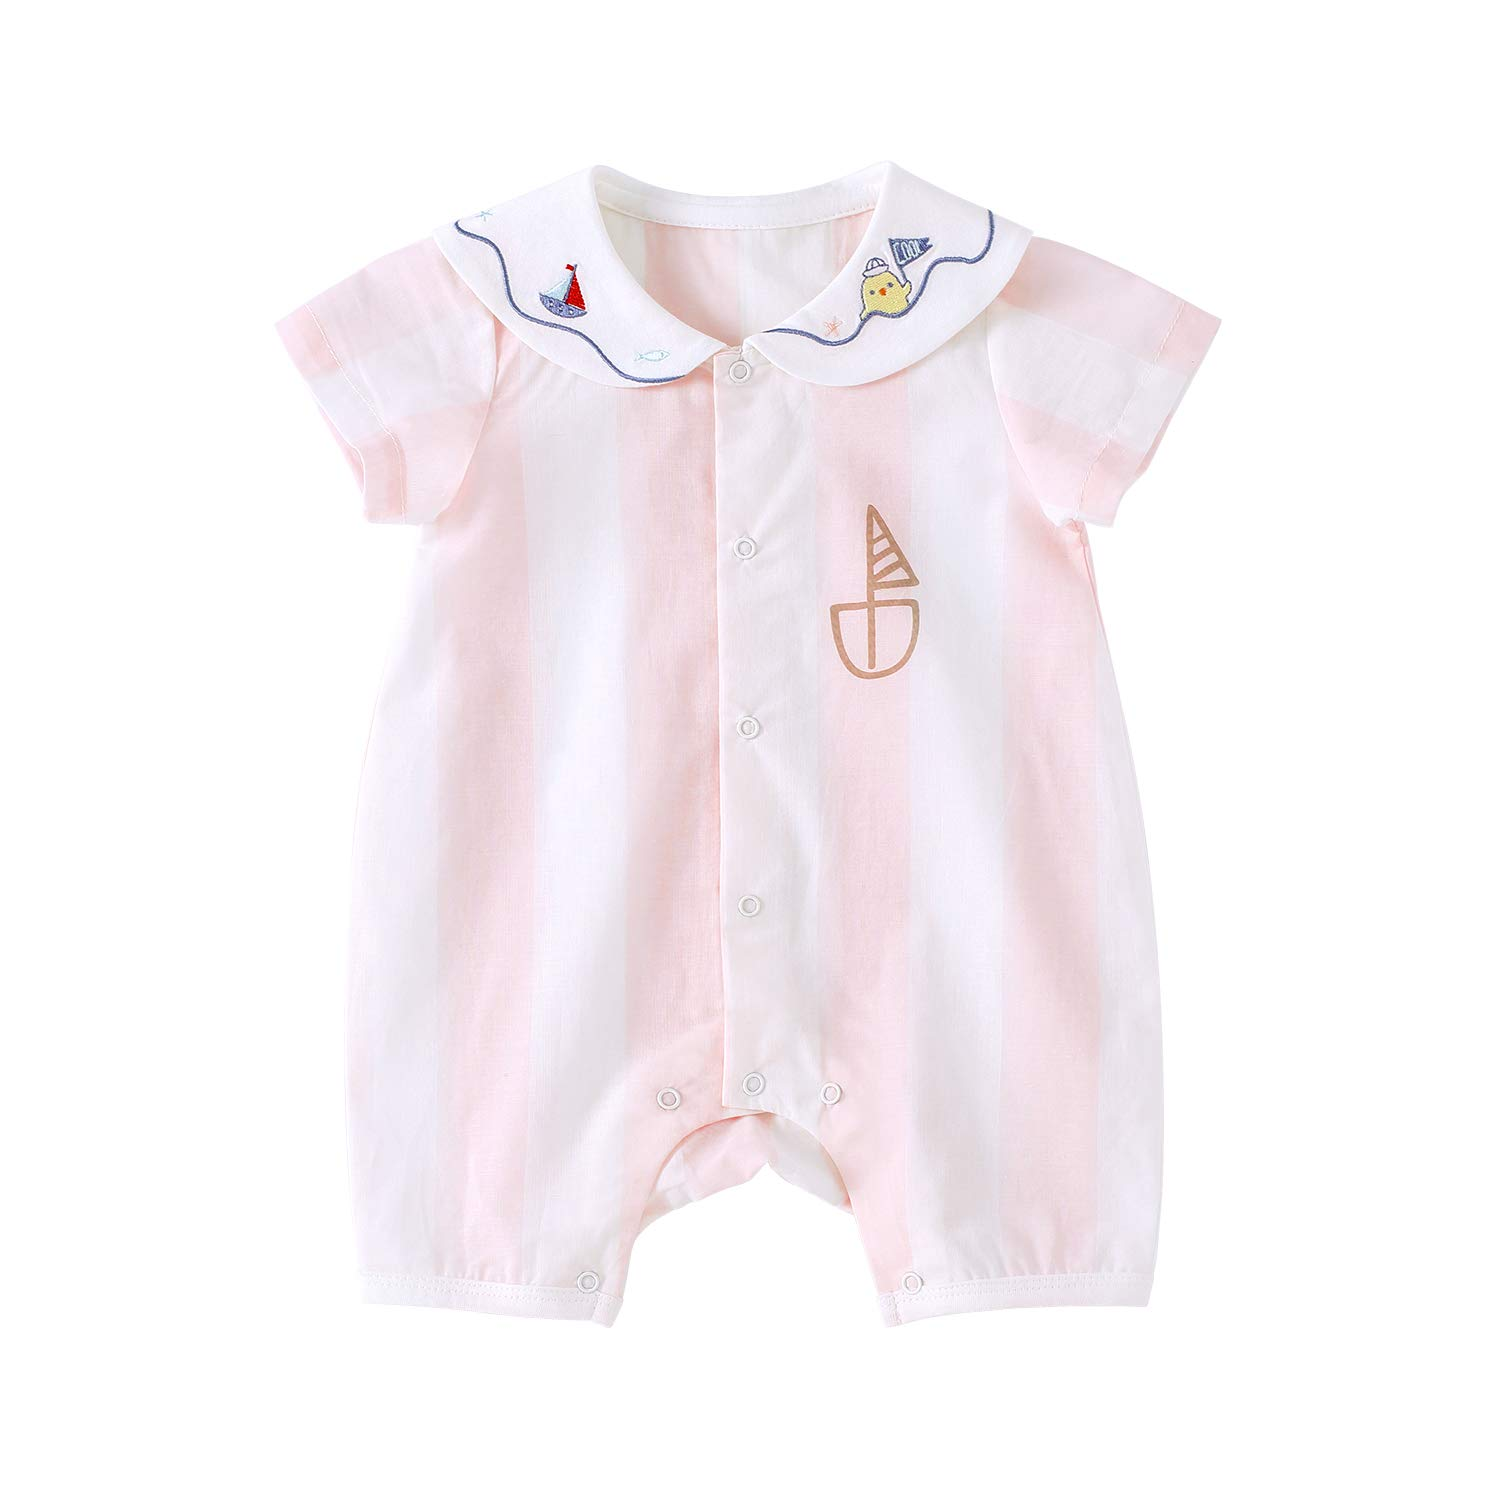 pureborn Baby Girls Romper Cute One-Piece Cotton Short Sleeve Summer Outfit Clothes